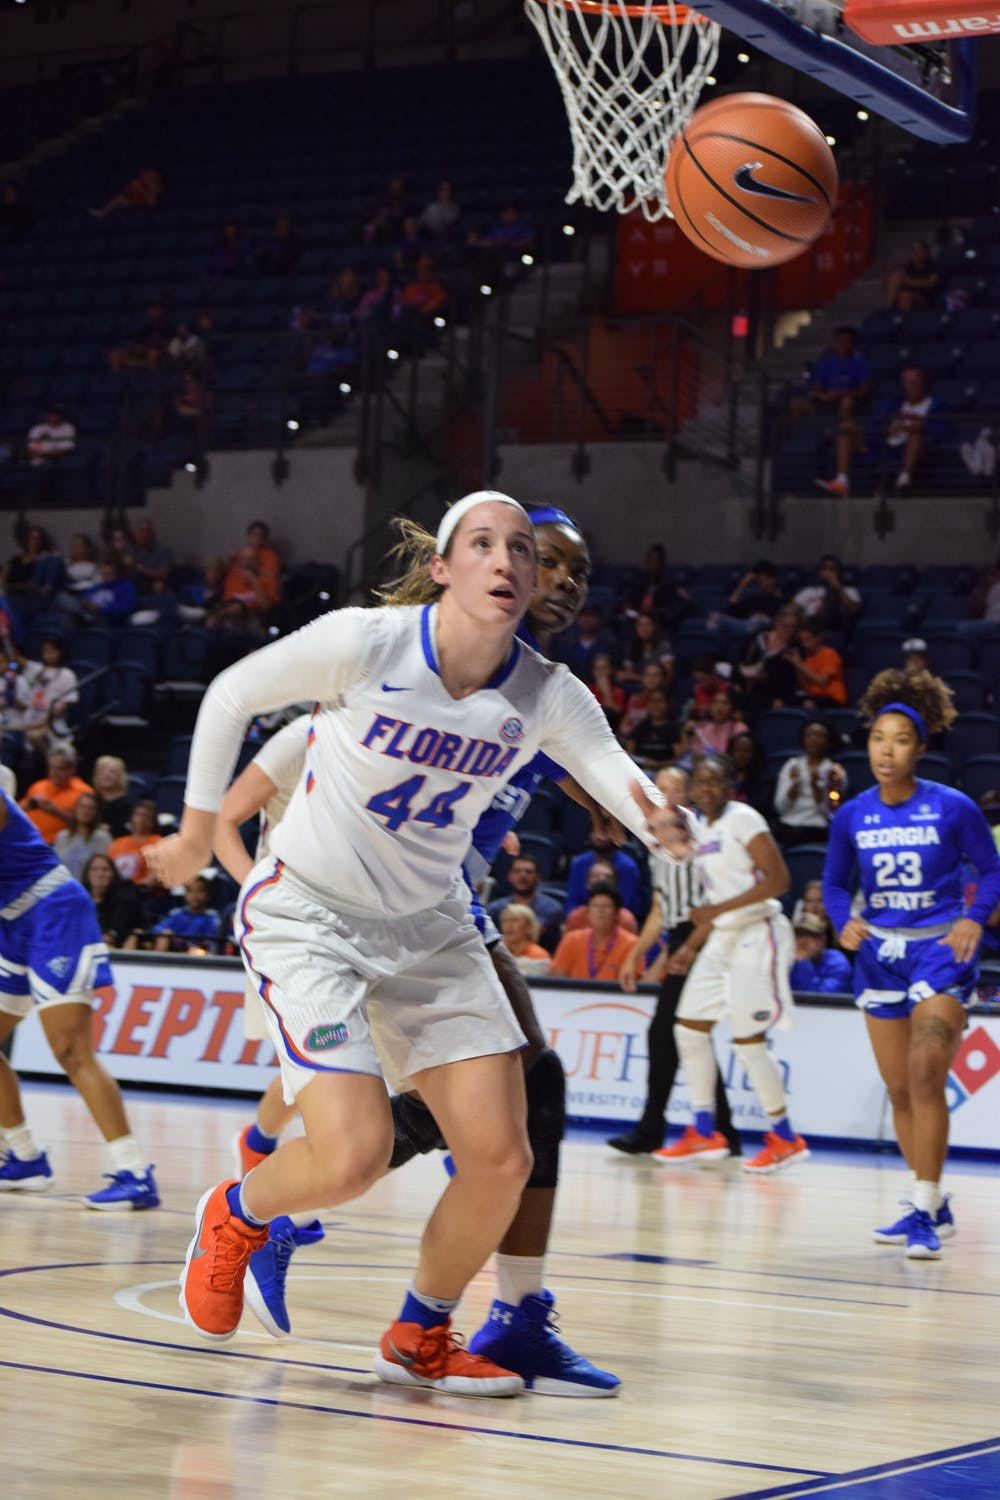 <p>Florida forward Haley Lorenzen recorded a double-double with 20 points and 11 rebounds in the Gators 69-59 win against Jacksonville on Tuesday.</p>